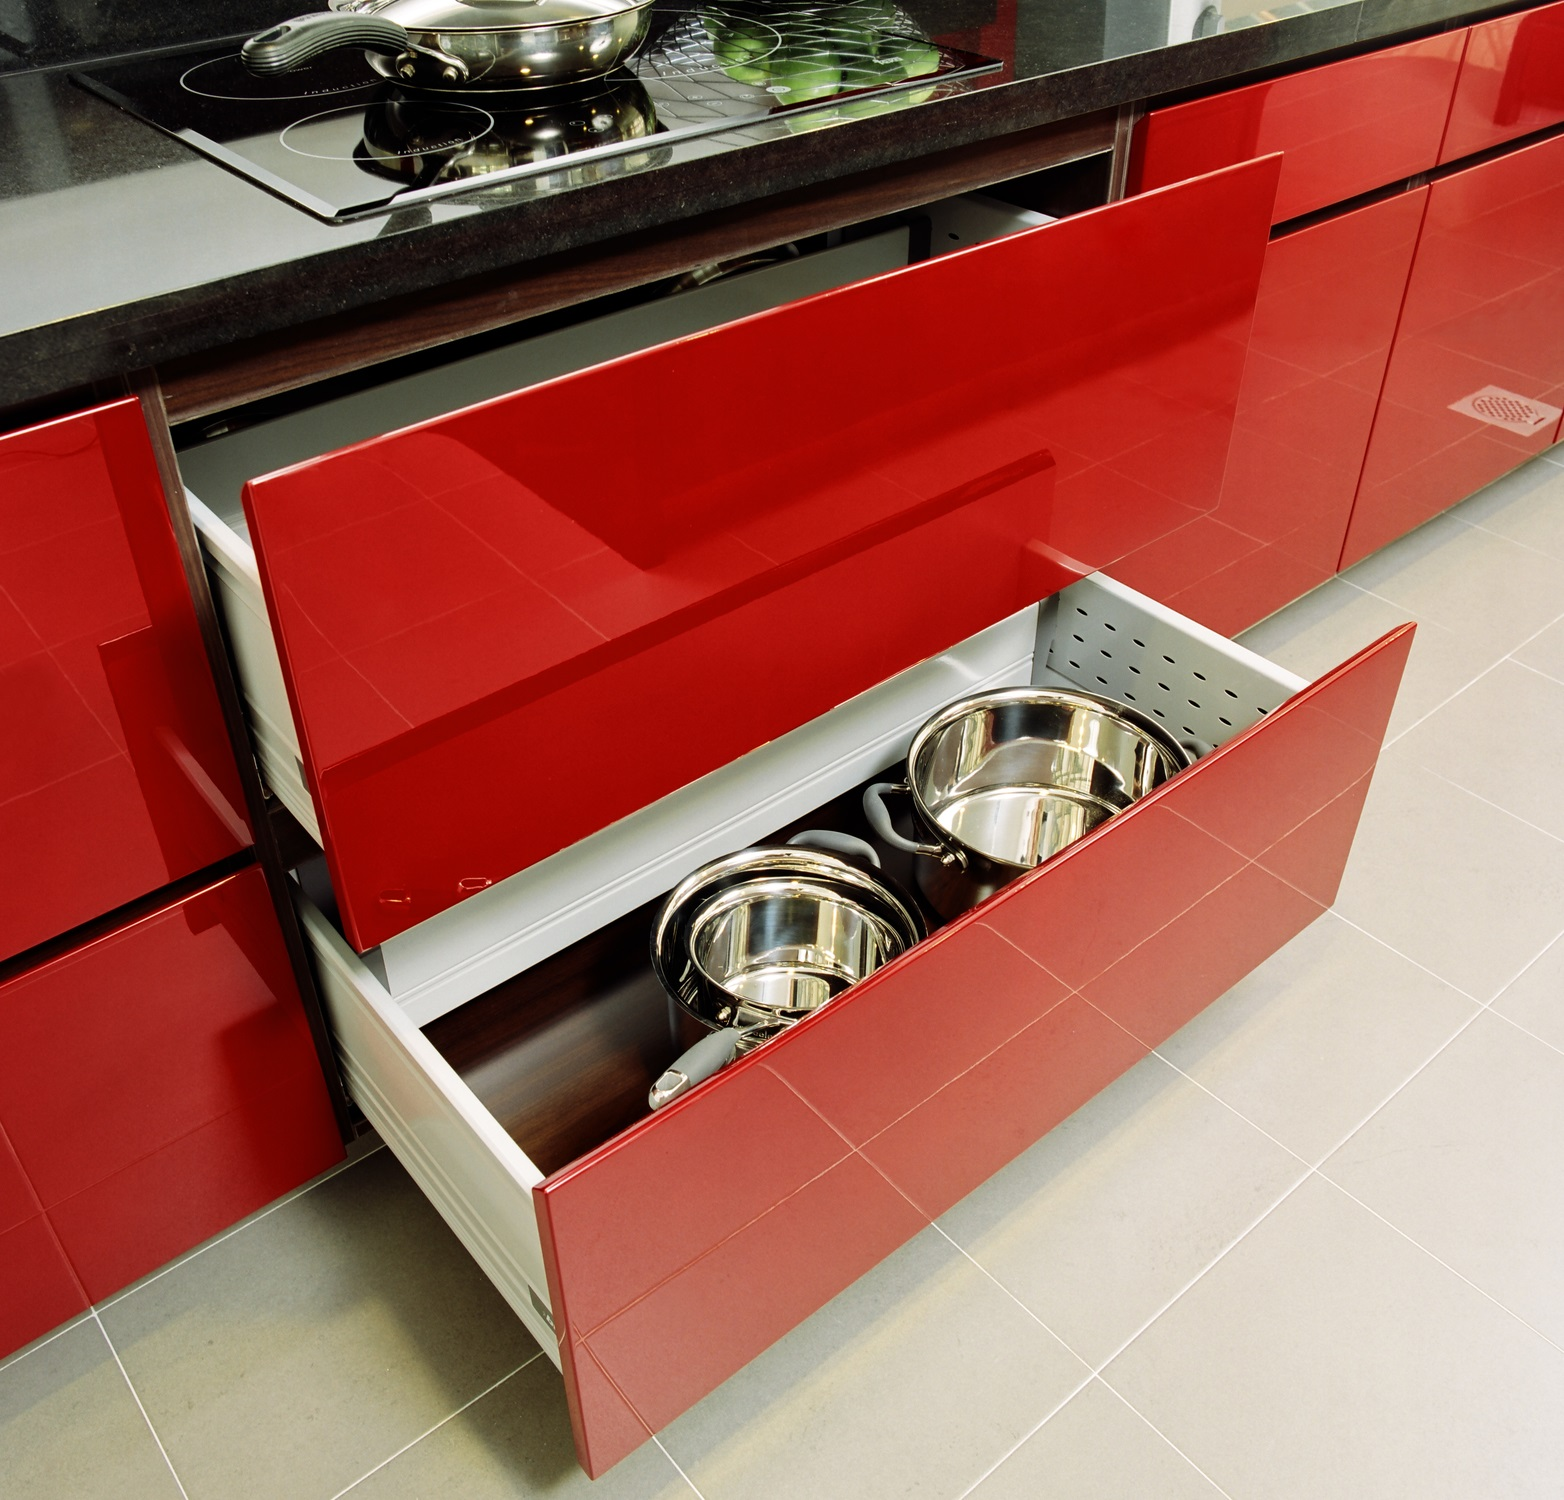 Kitchen cabinets in red